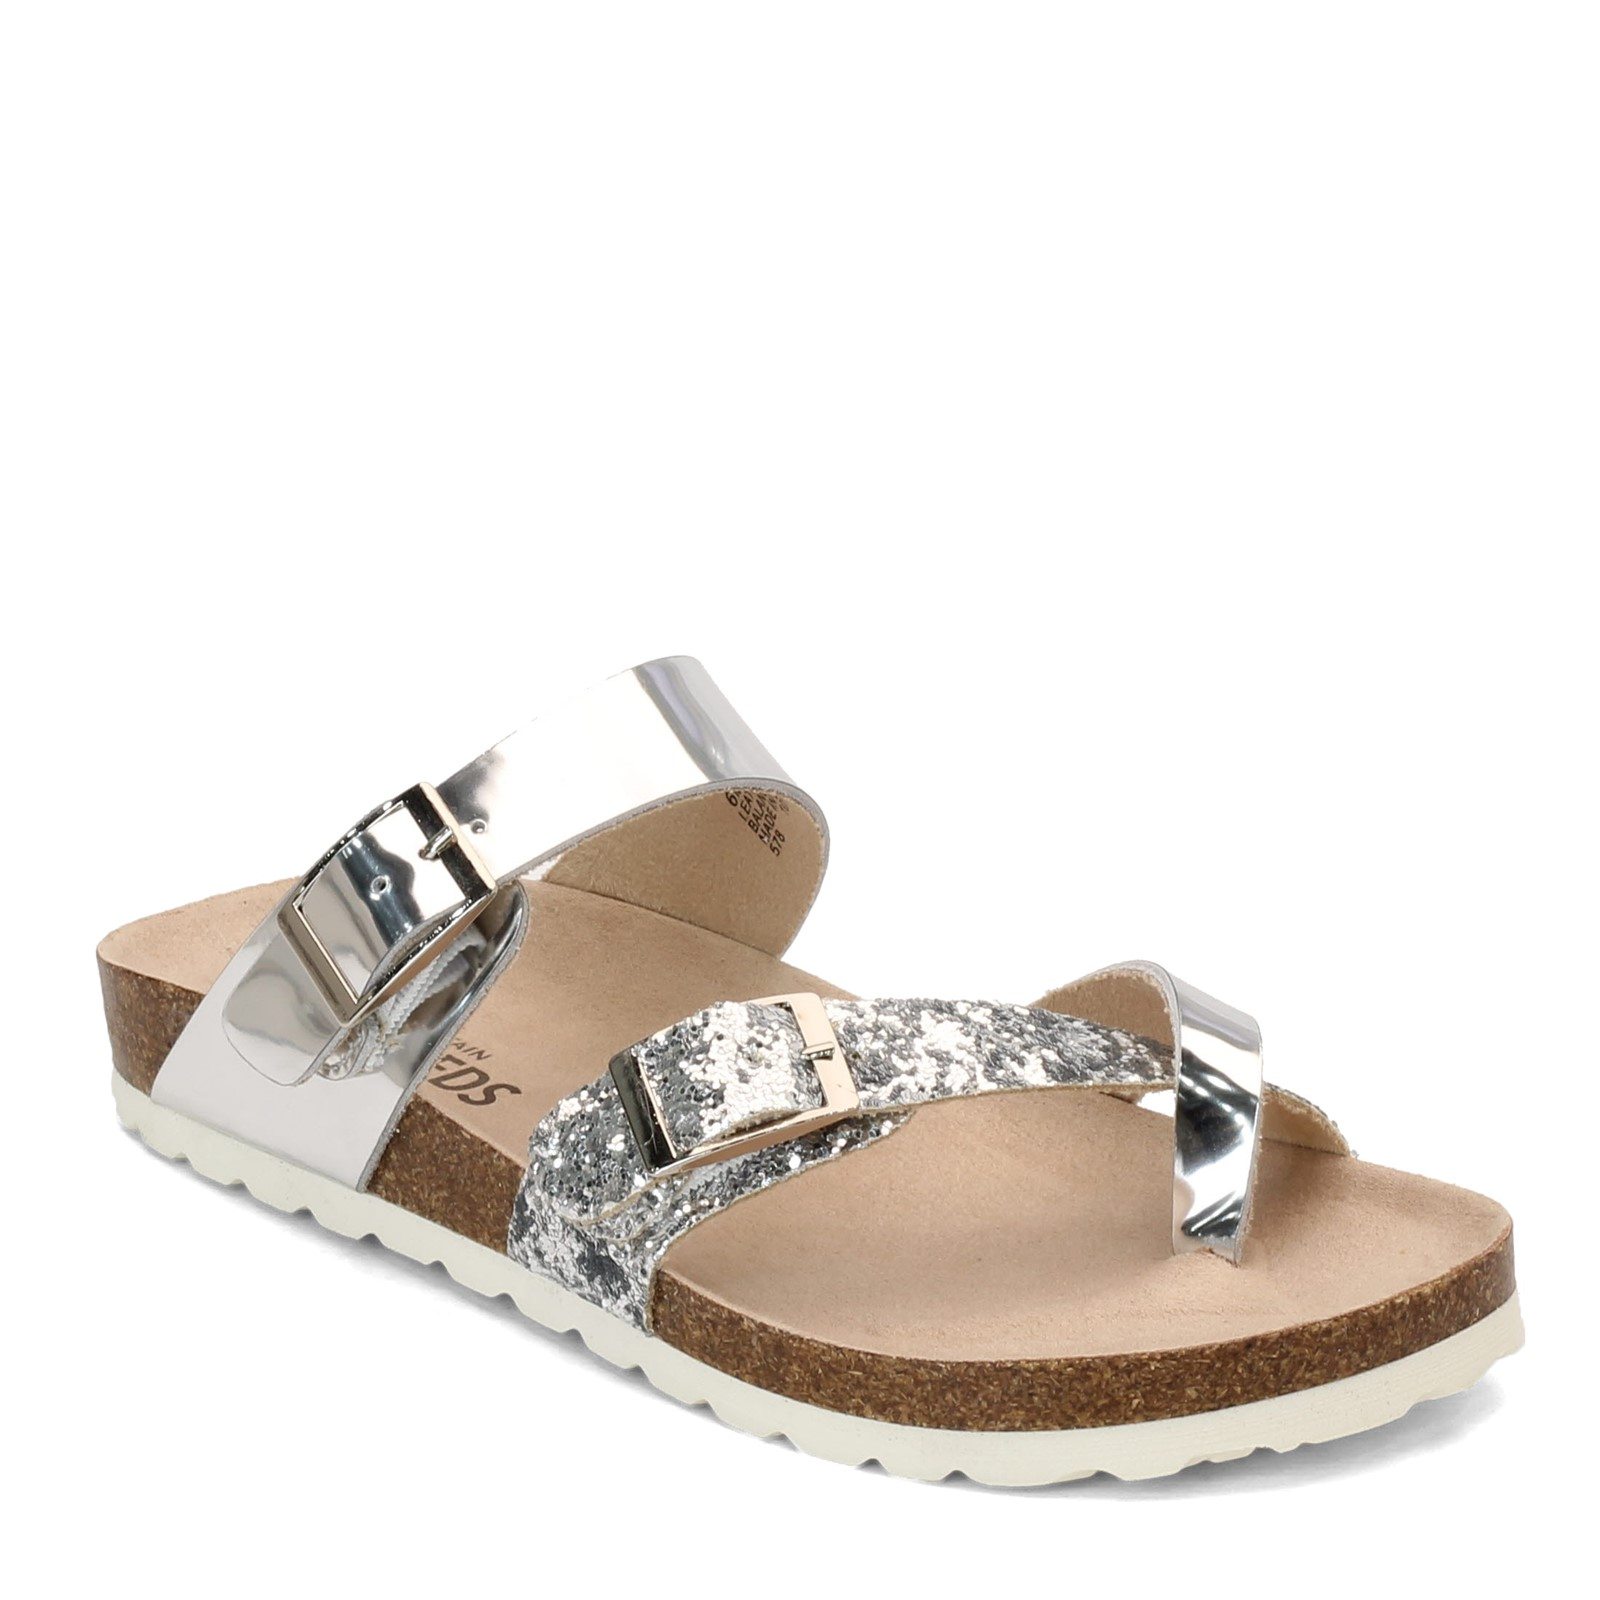 Women's White Mountain, Gracie Sandal